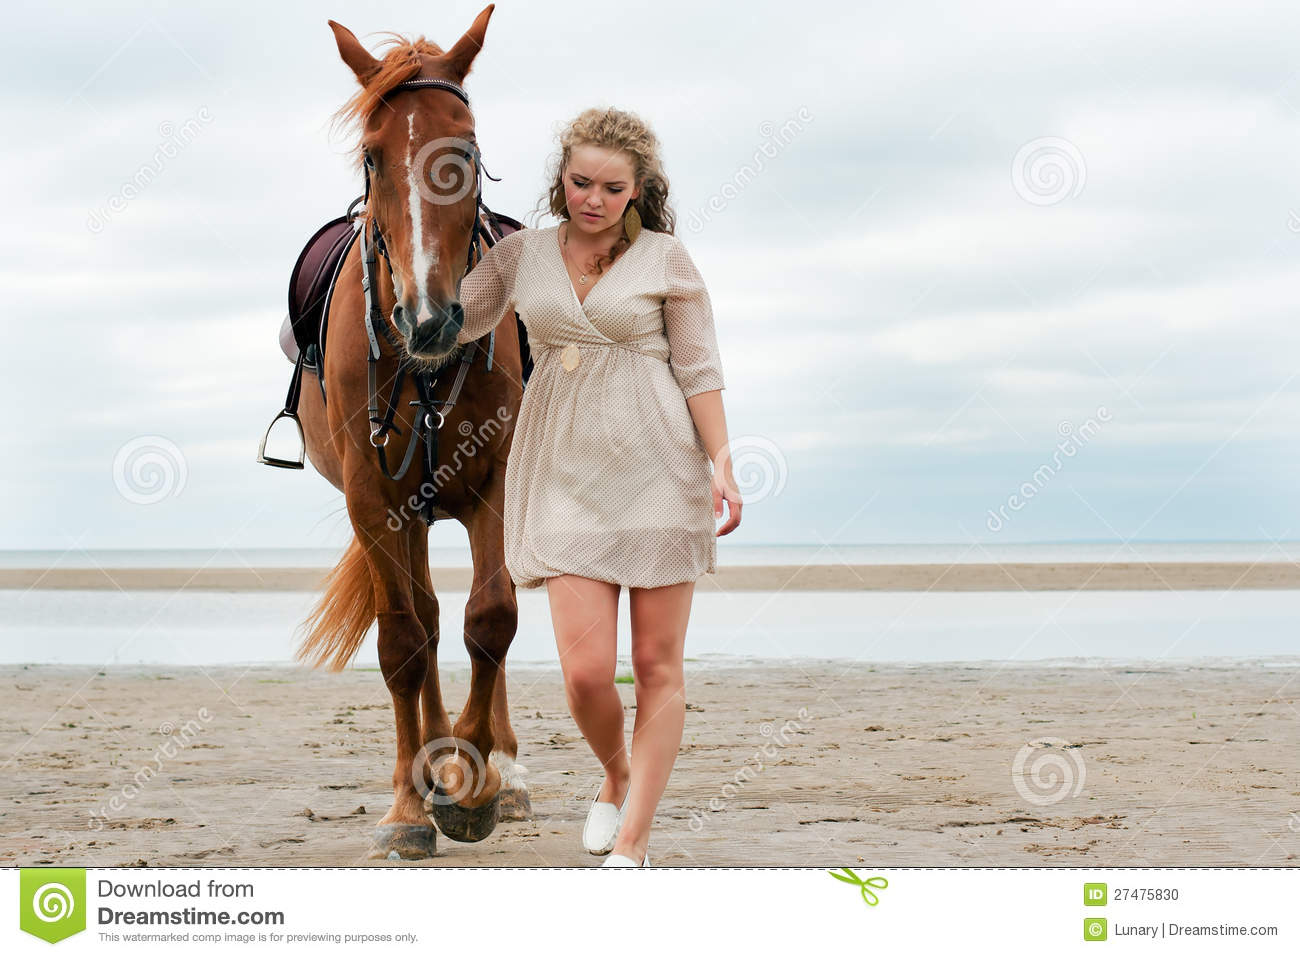 Young woman goes near a horse